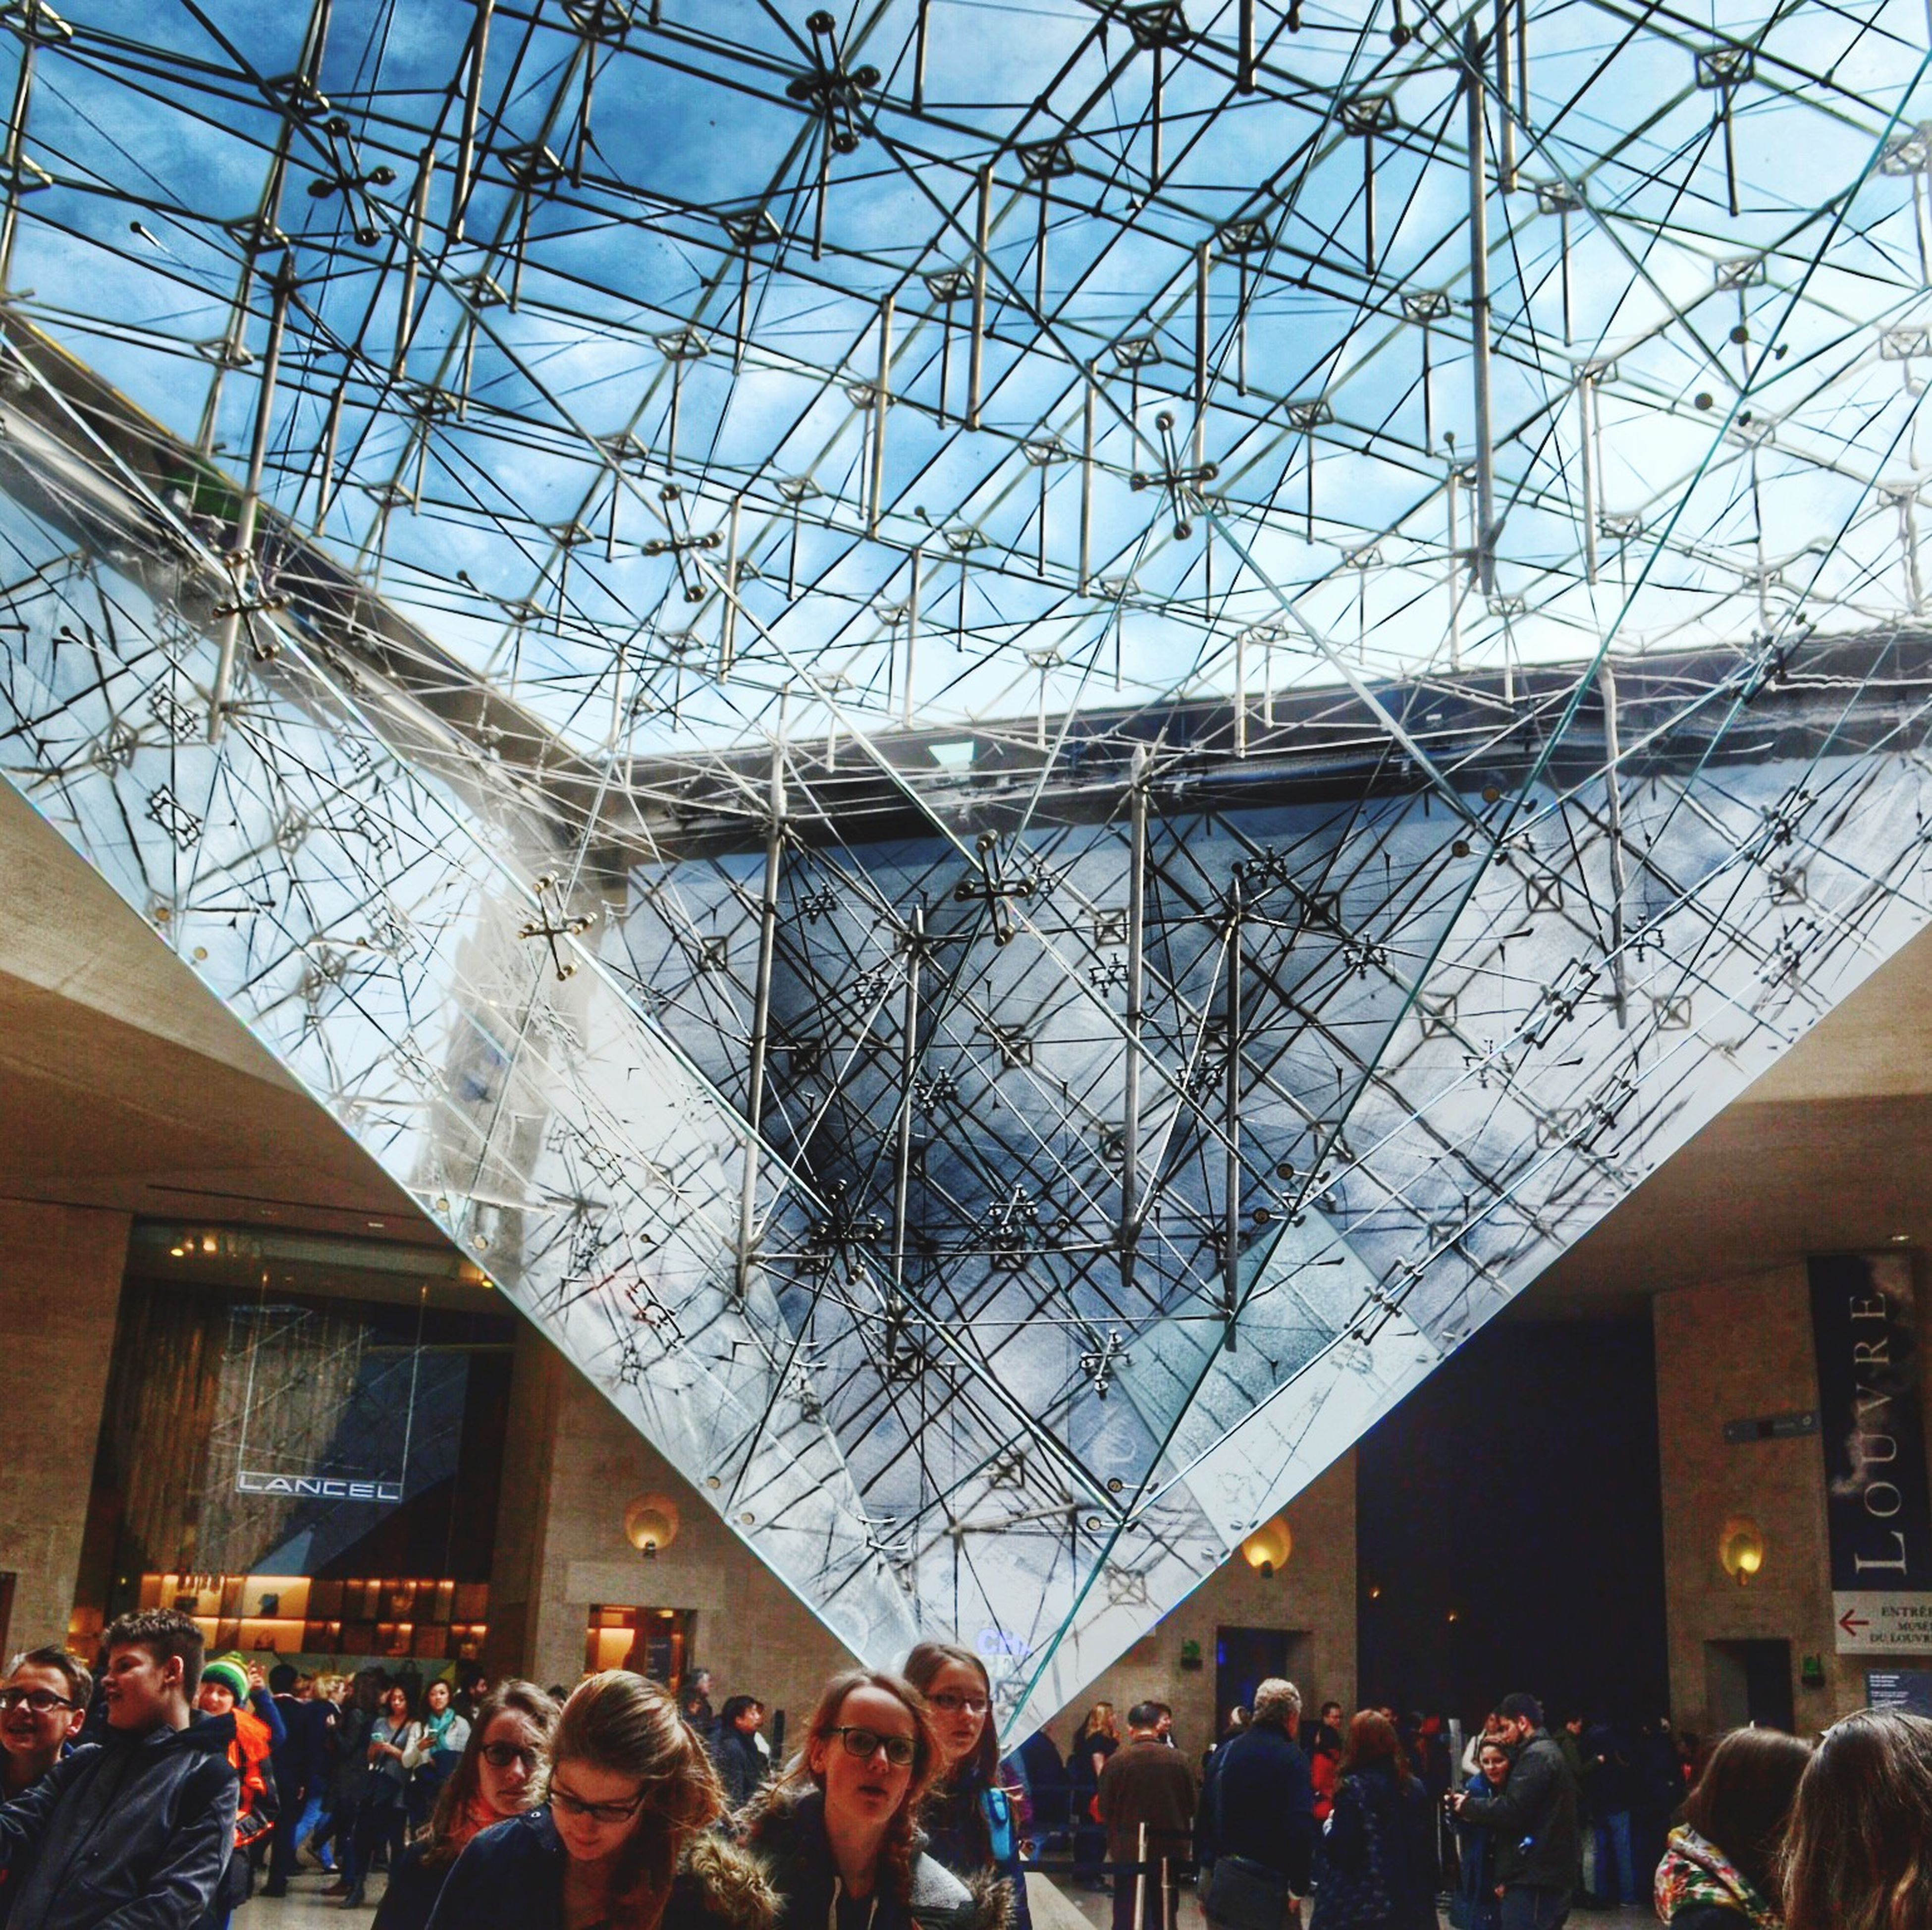 indoors, large group of people, lifestyles, men, ceiling, person, leisure activity, built structure, architecture, crowd, glass - material, low angle view, shopping mall, hanging, transparent, day, arts culture and entertainment, lighting equipment, illuminated